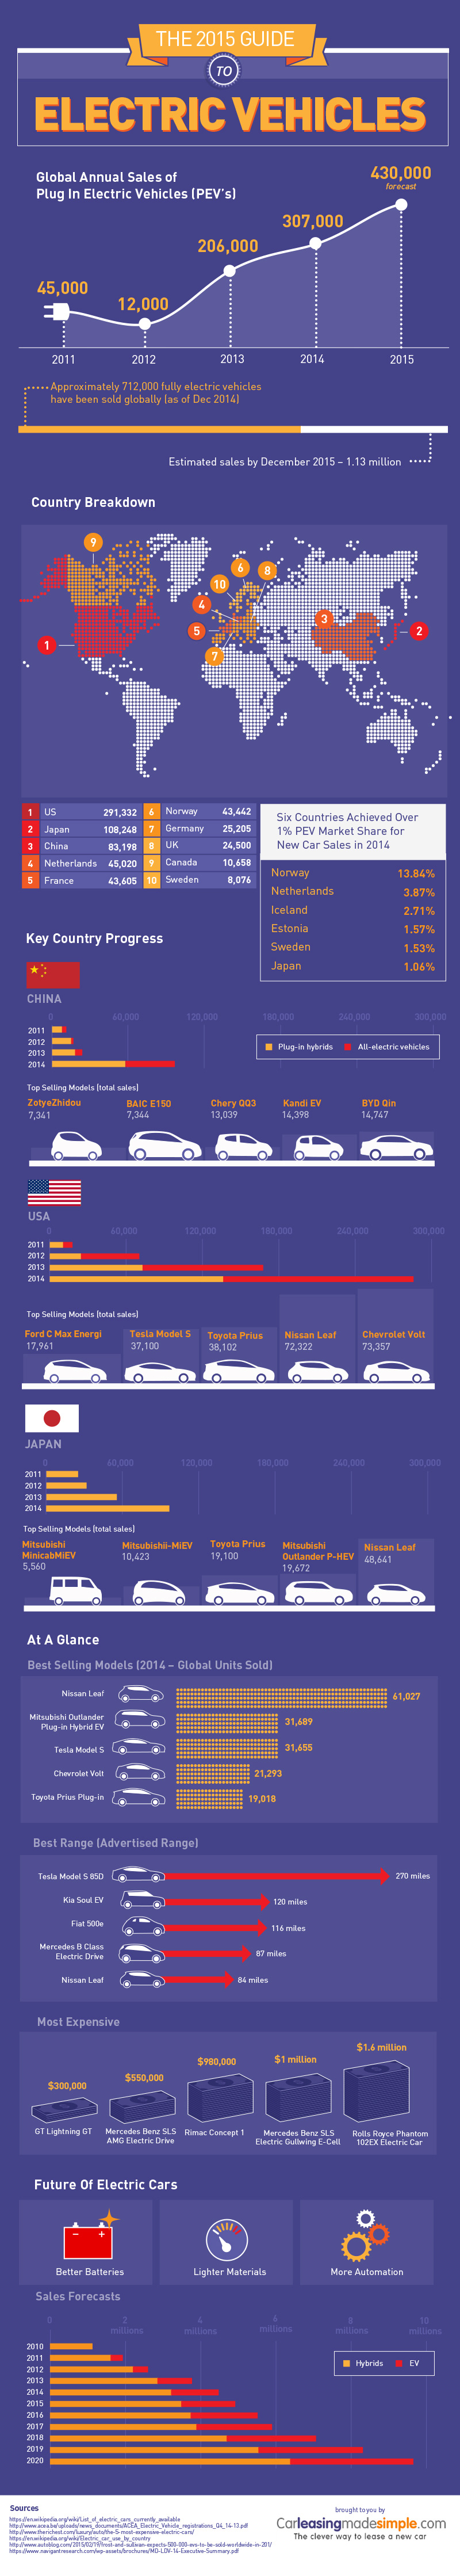 The 2015 Guide to Electric Vehicles